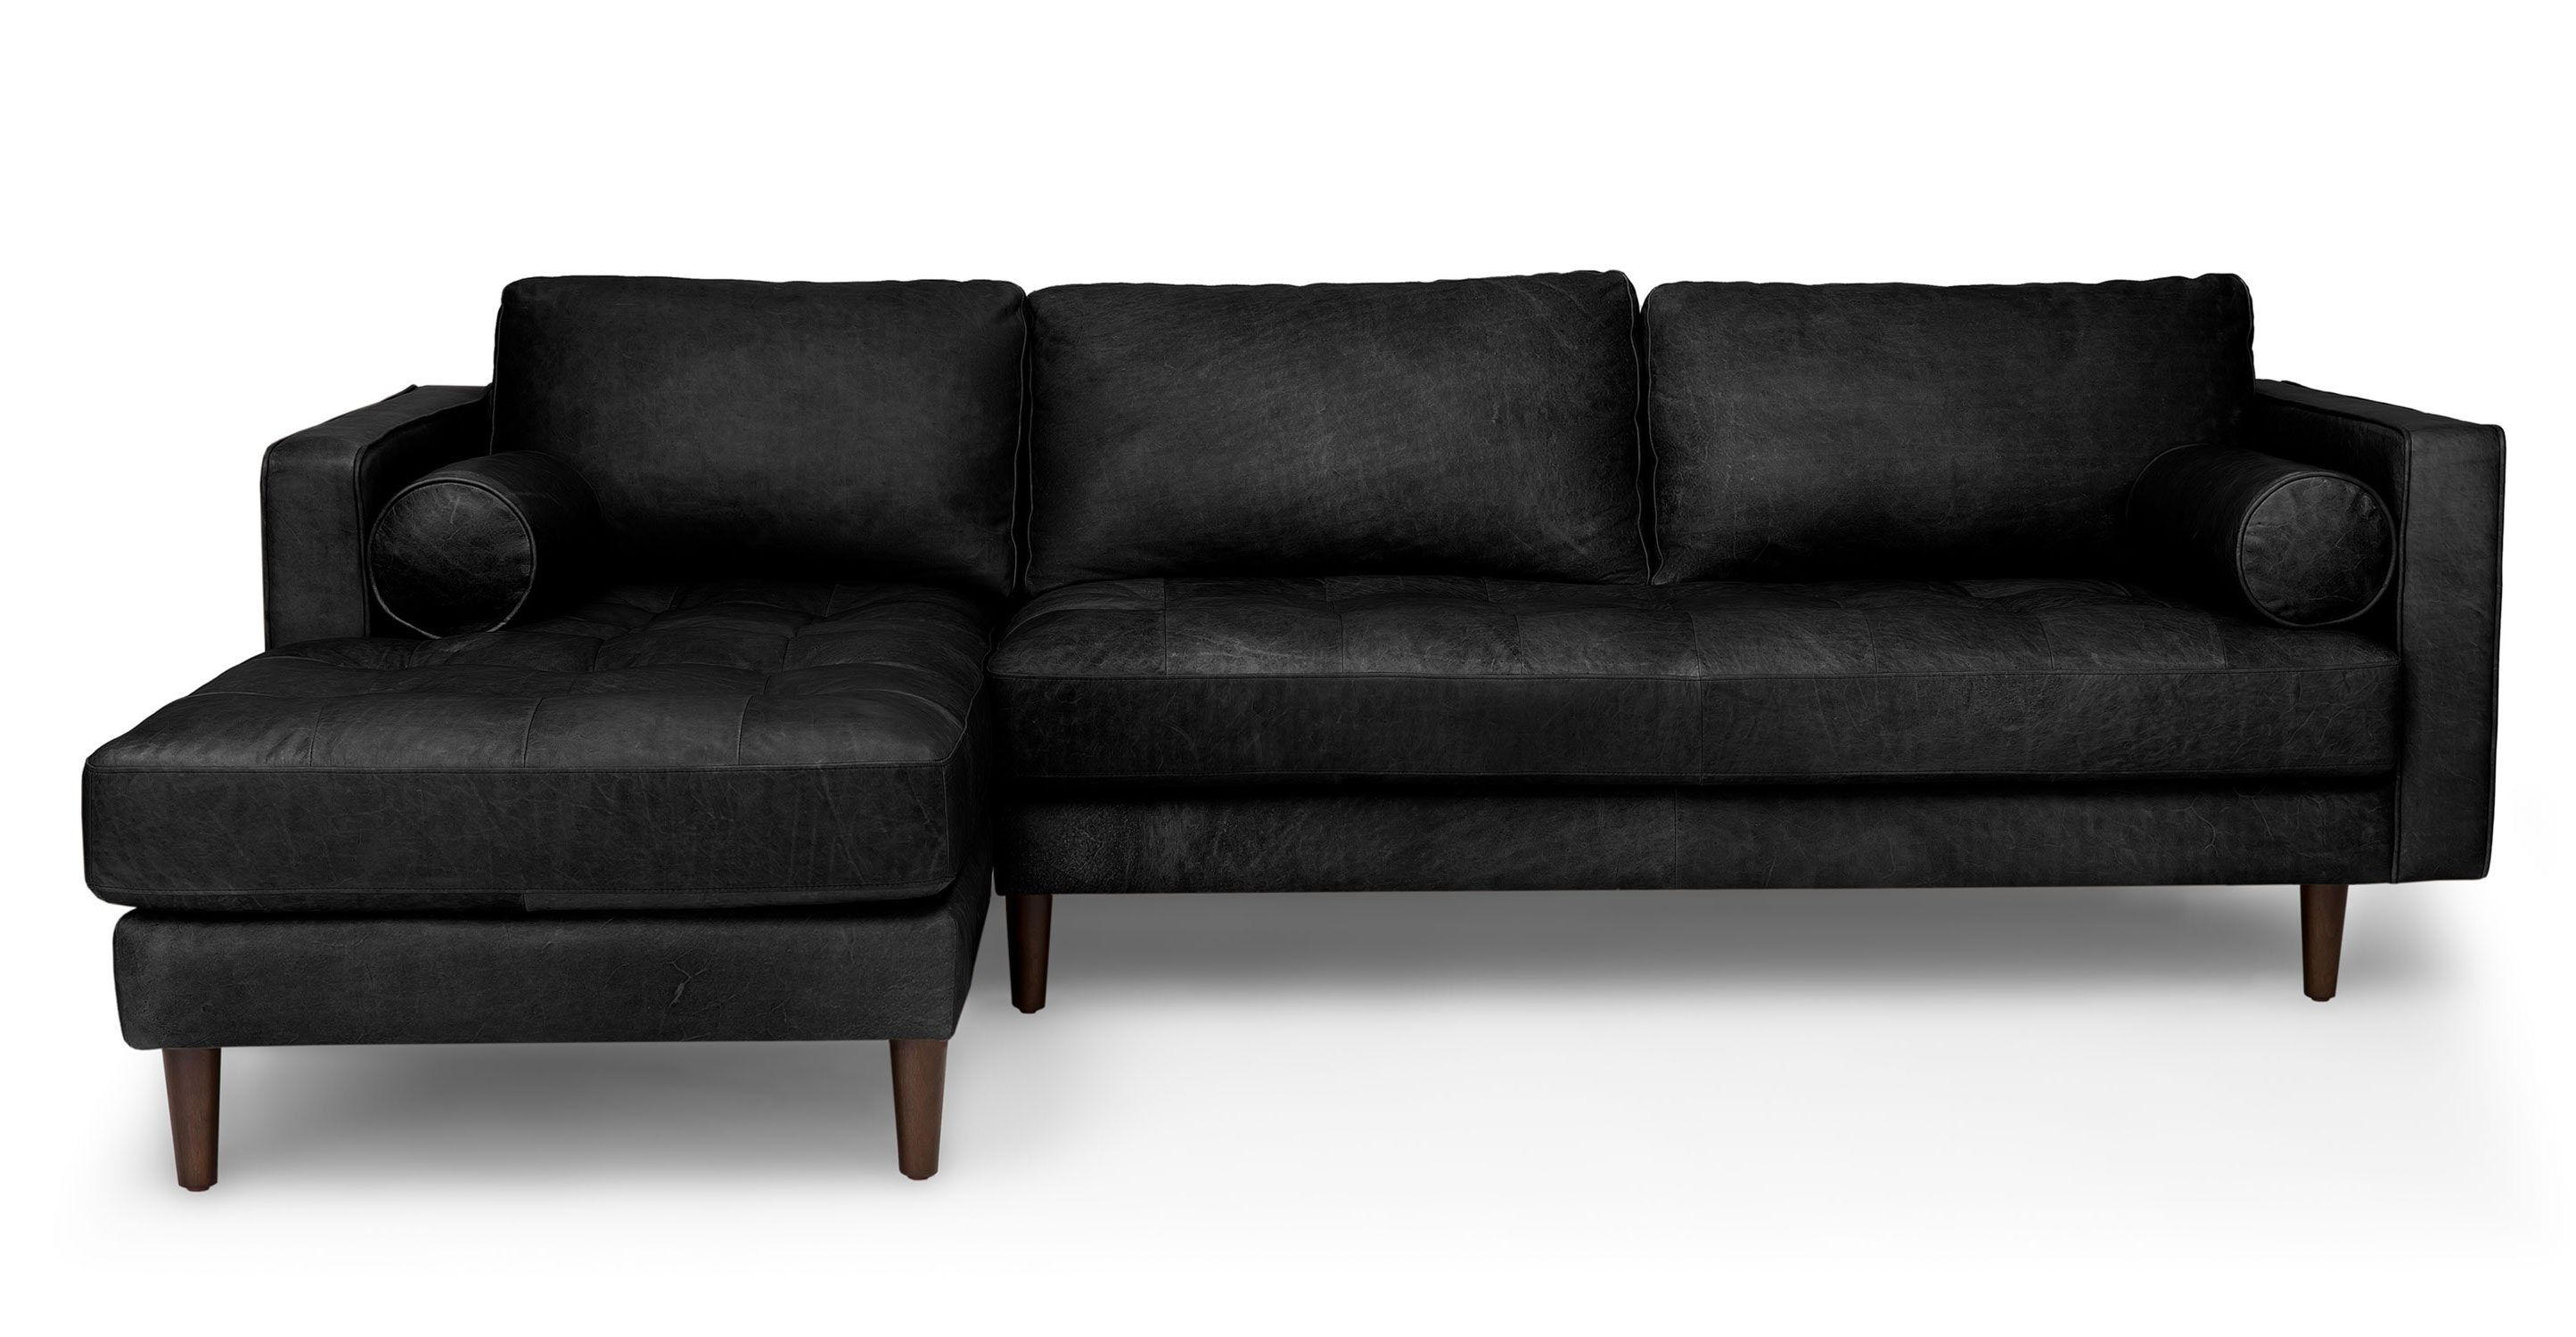 Black Leather Sectional Sofa Tufted